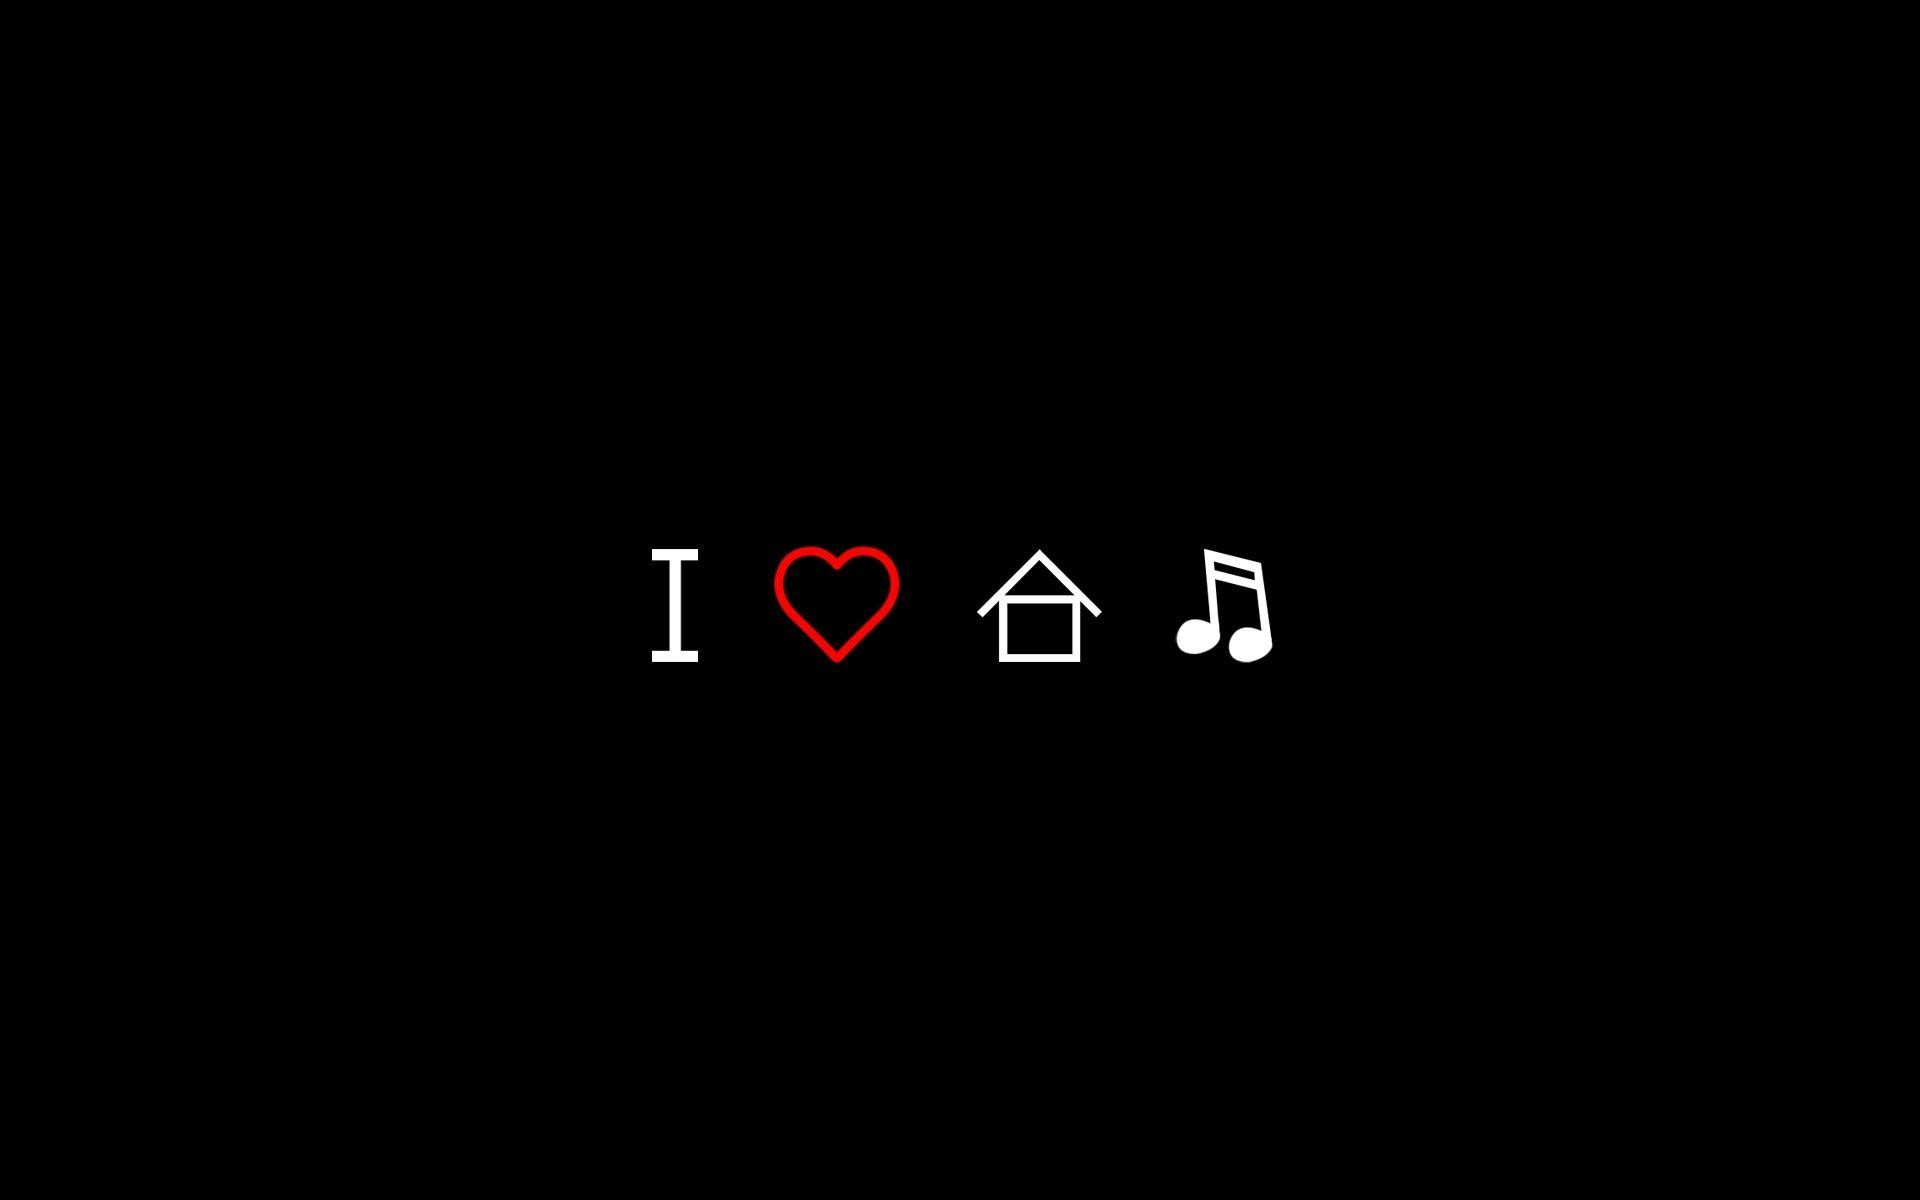 house music backgrounds 64 images